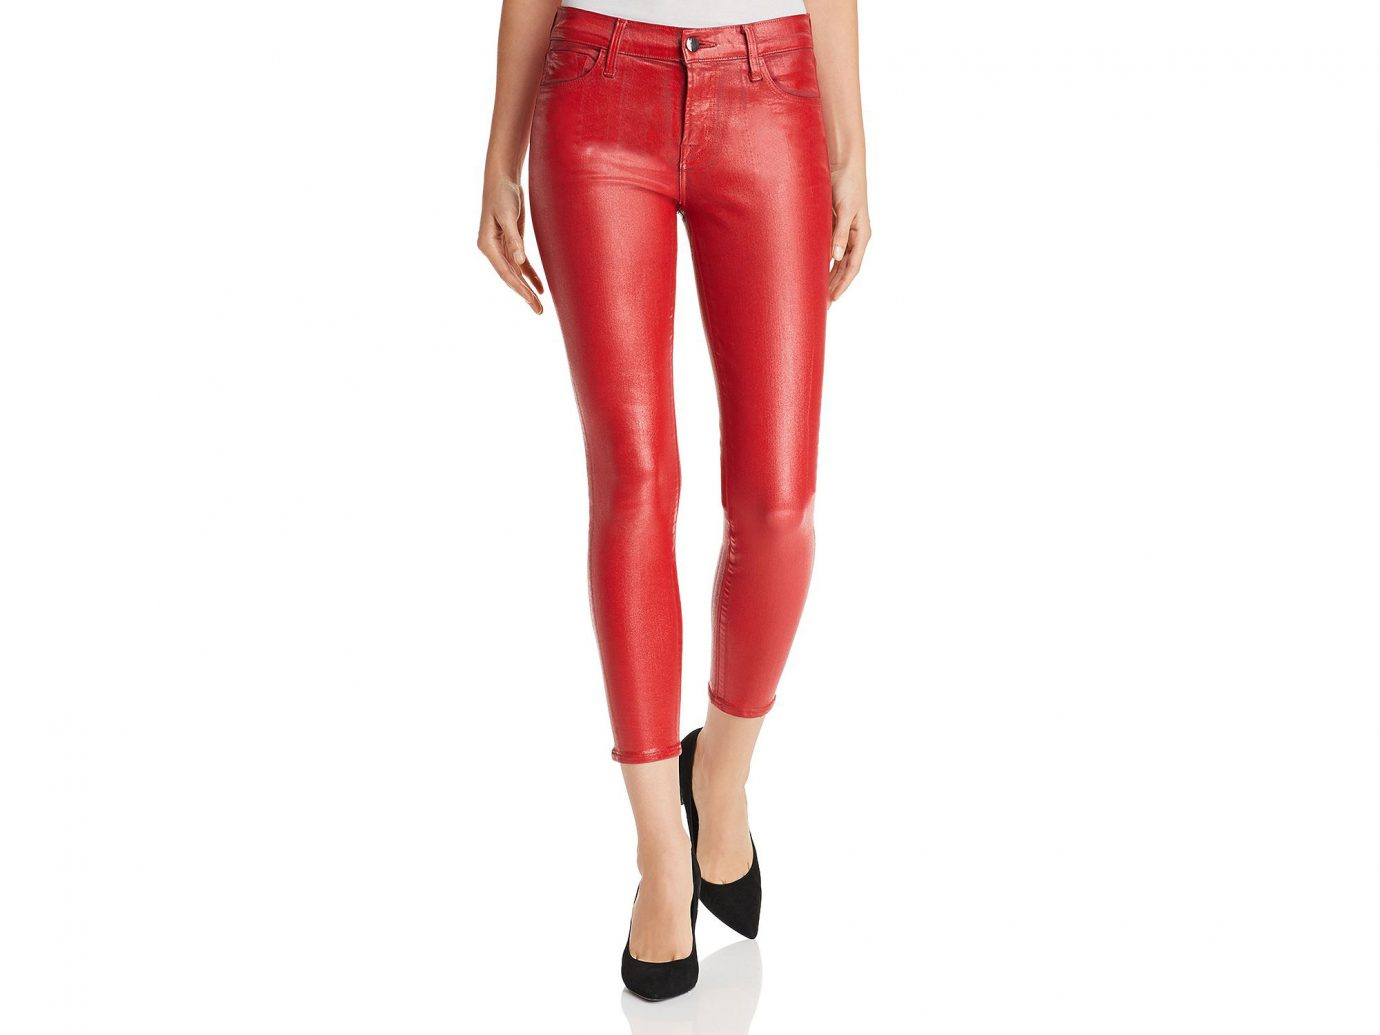 J Brand 835 Coated Capri Skinny Jeans in Phenomena